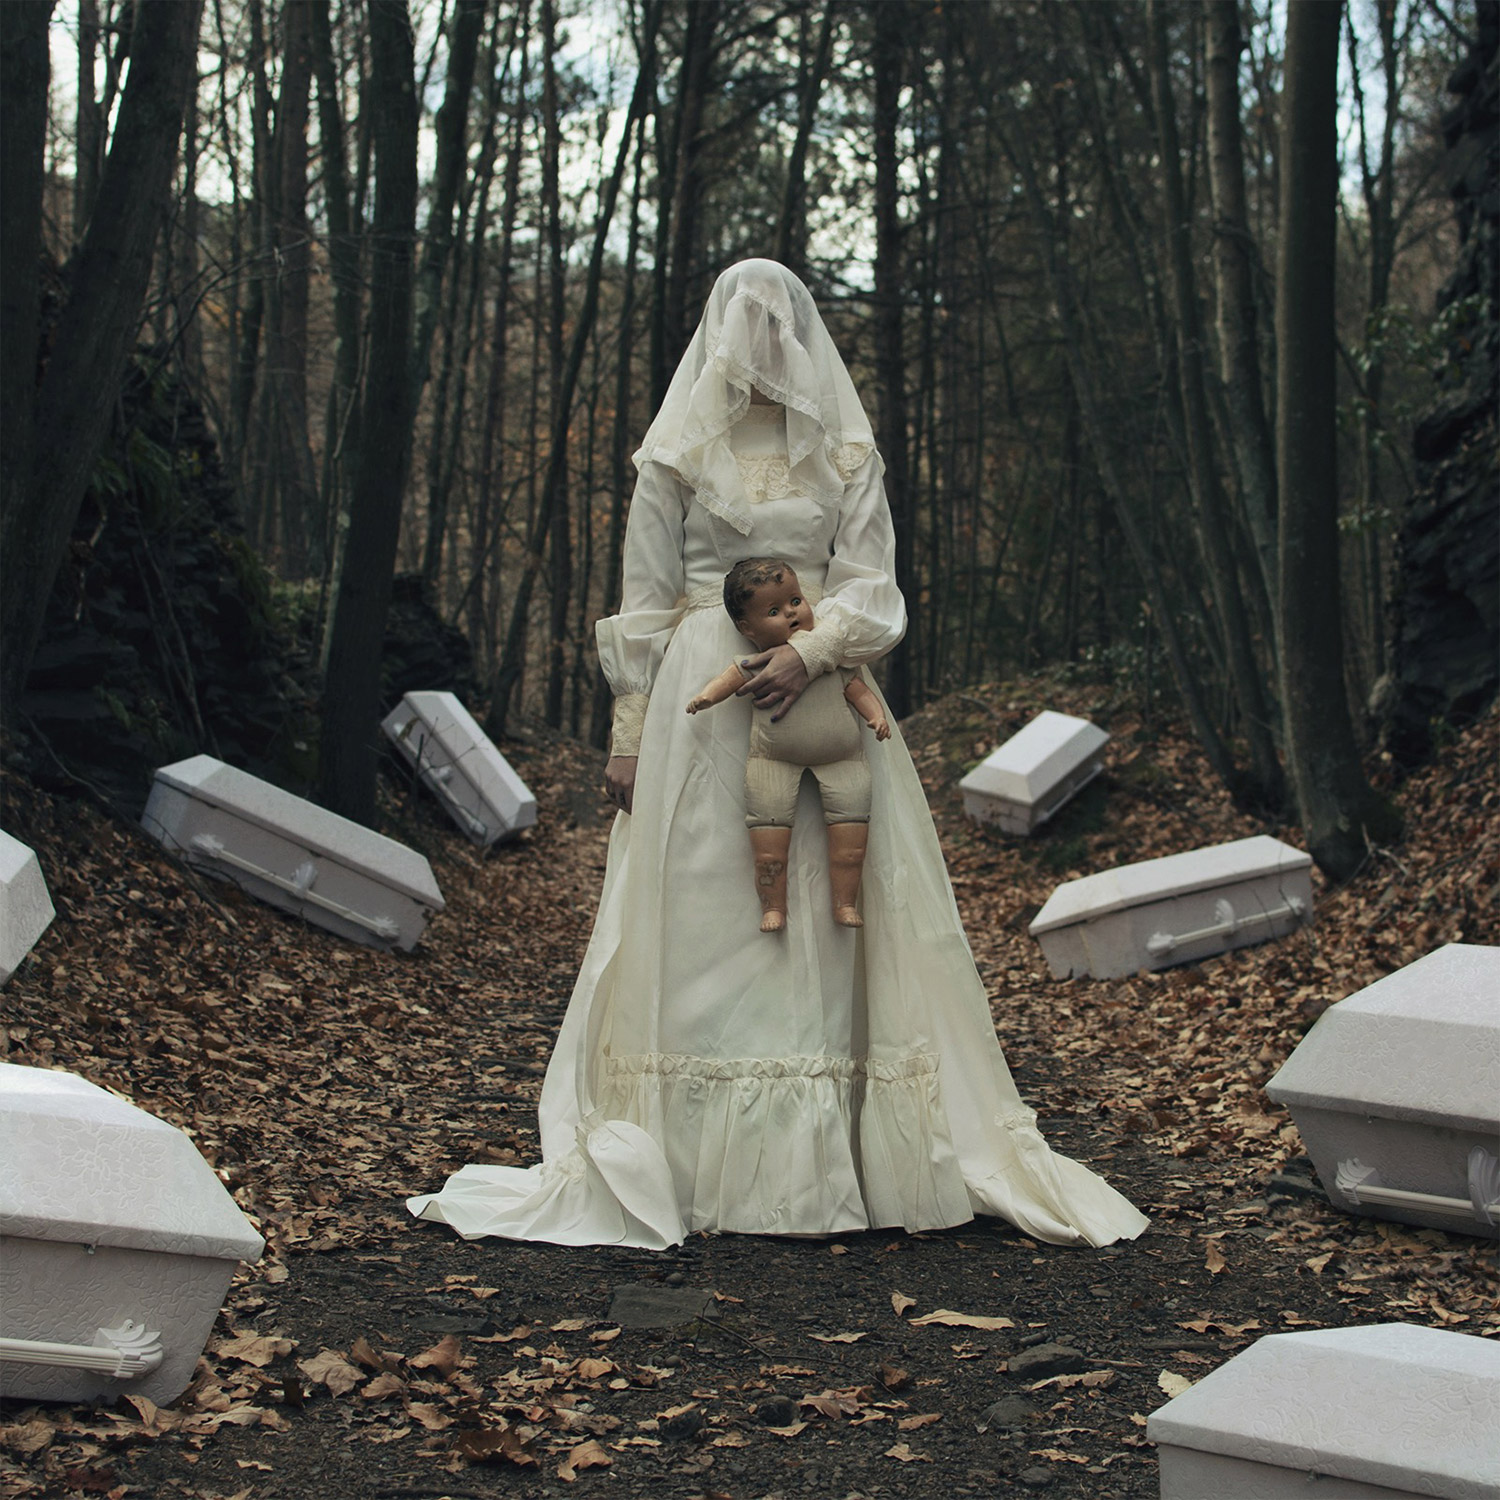 Christopher McKenney - coffins and white figure